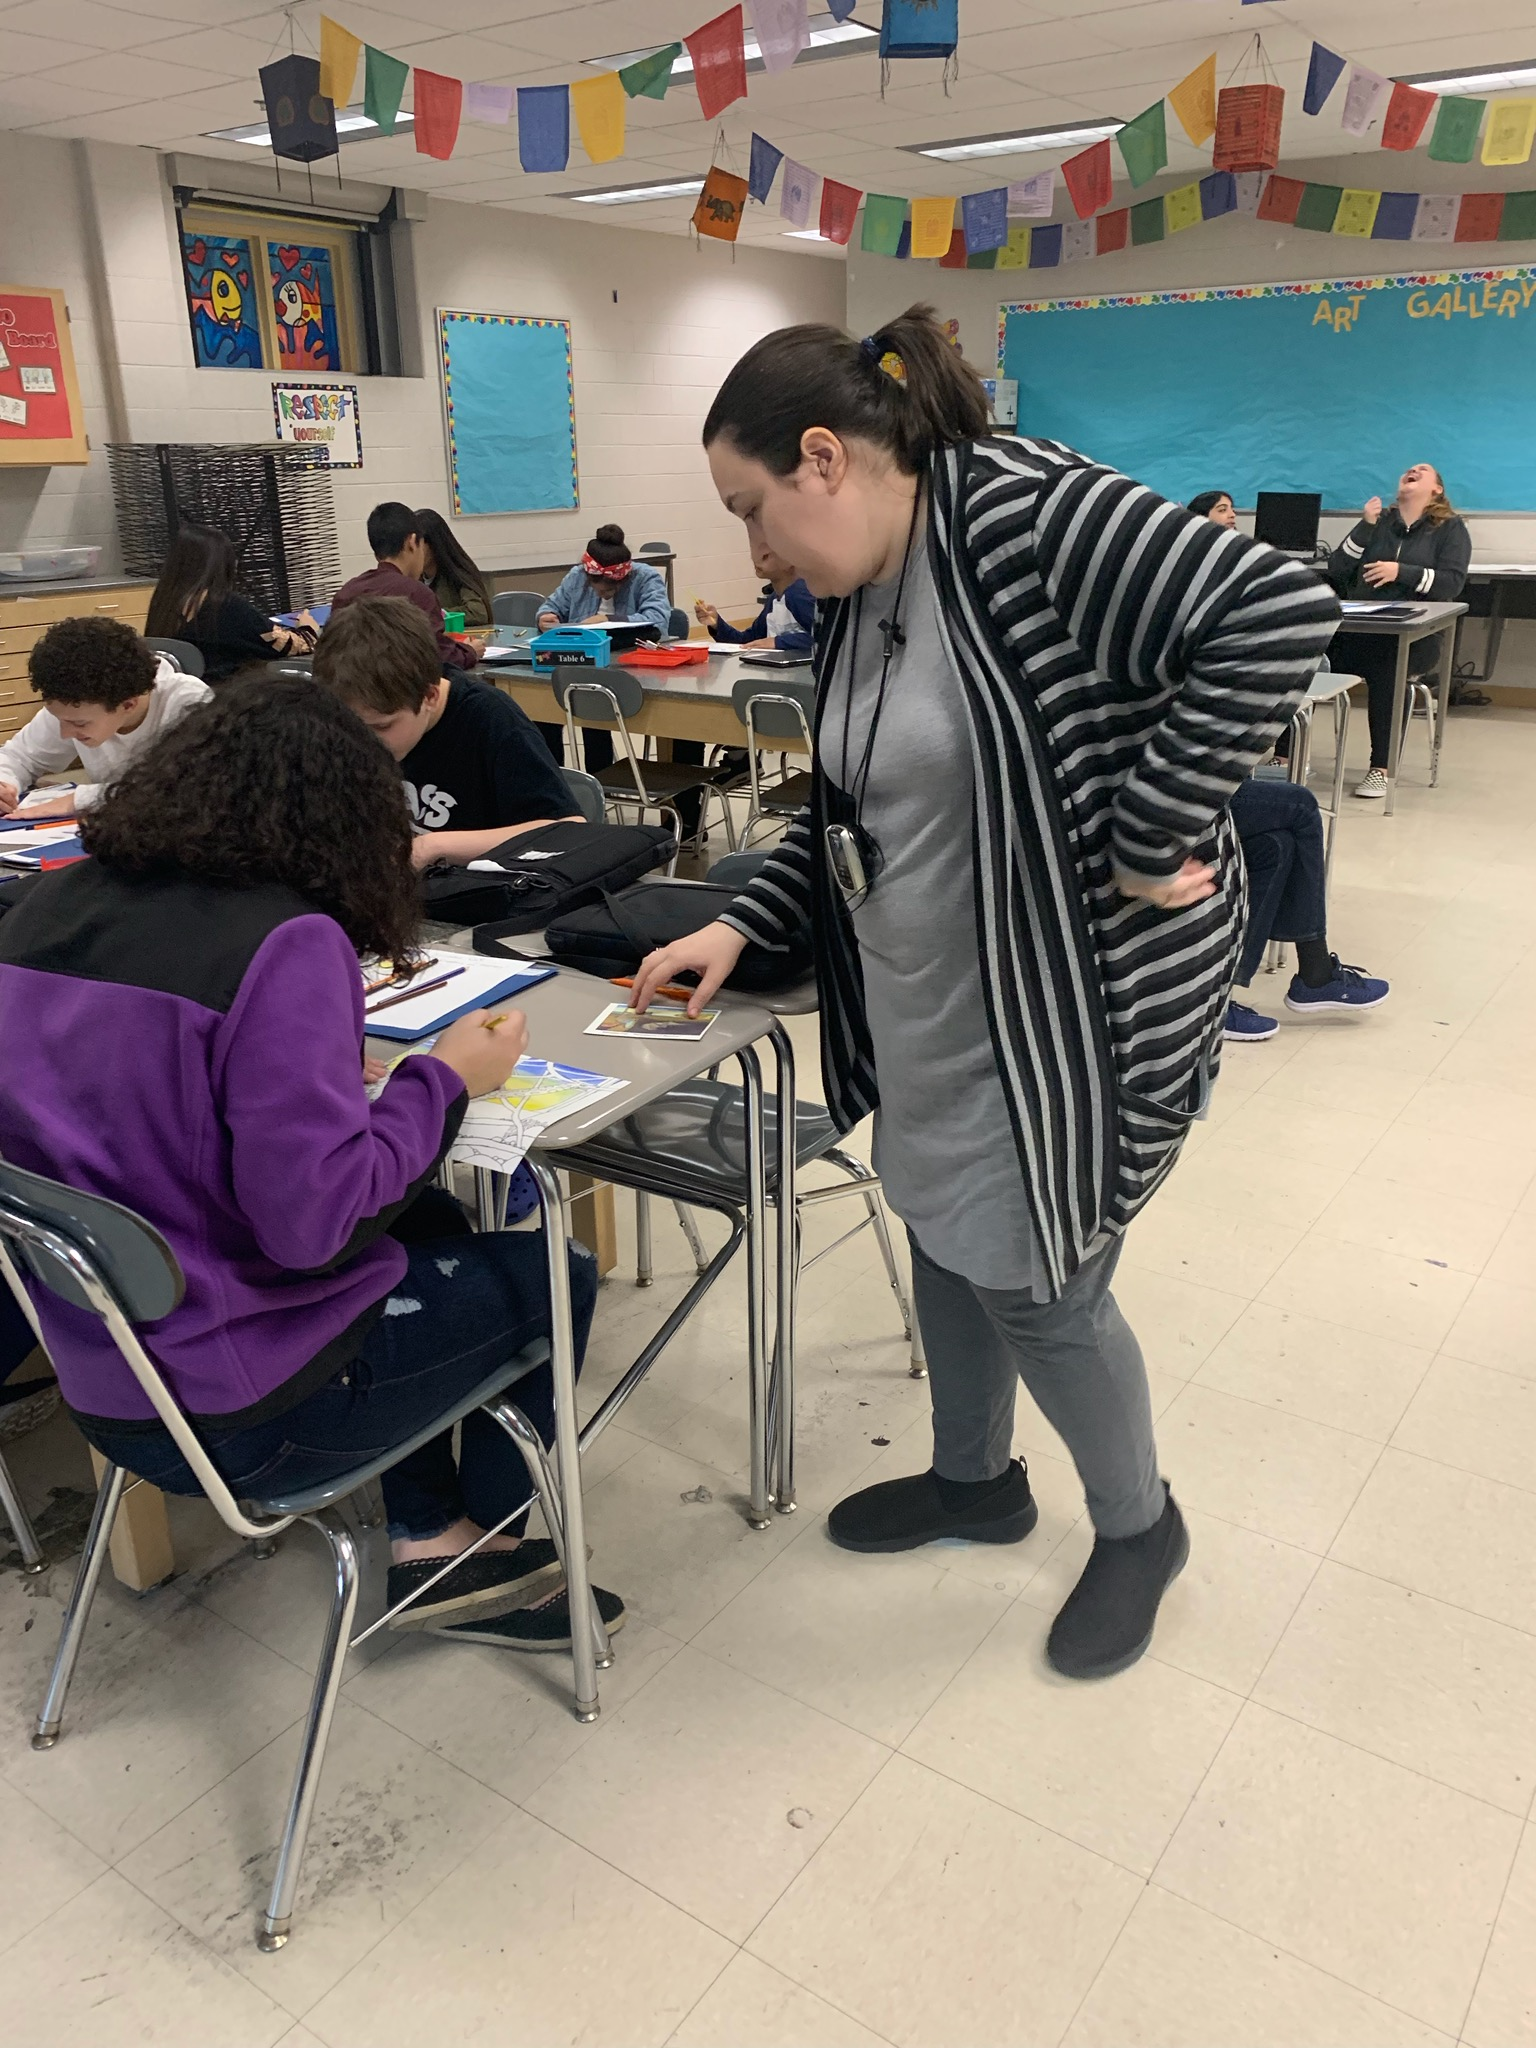 Ms. Pellegrino encourages all students and has high expectations of them and their work. She provides additional supports, modifications, adaptations, and differentiated instruction for learners of various needs.